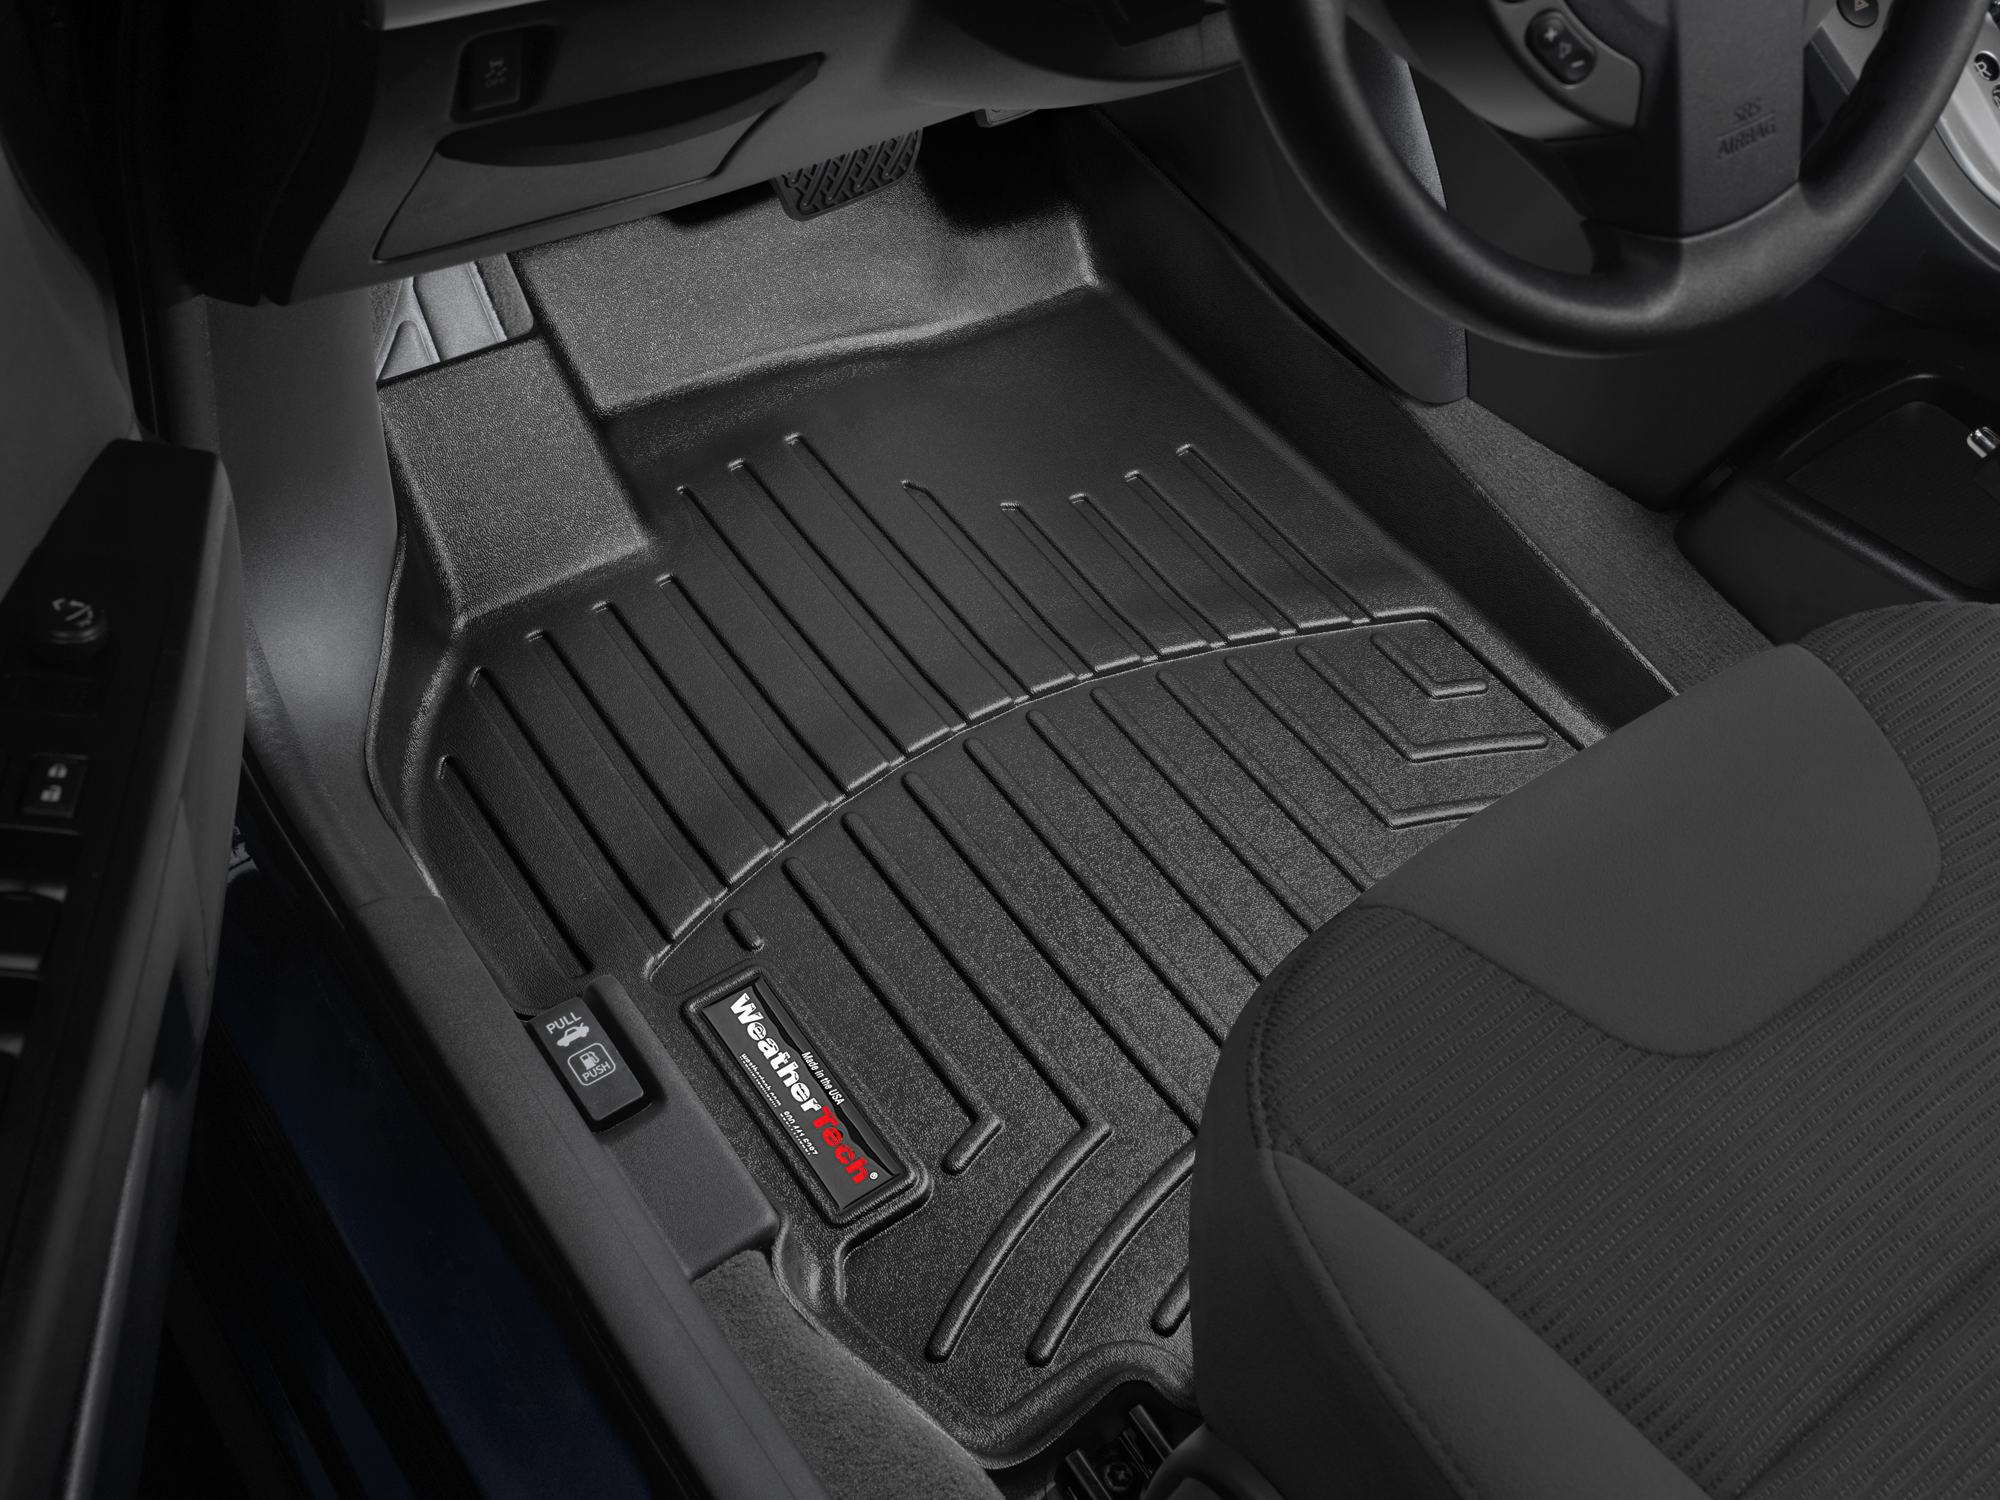 Weathertech floor mats kia rondo - Custom Fit Laser Measured Floorliners Are Available For The 2008 Nissan Sentra Individual Availability Is Based On Your Vehicle S Options